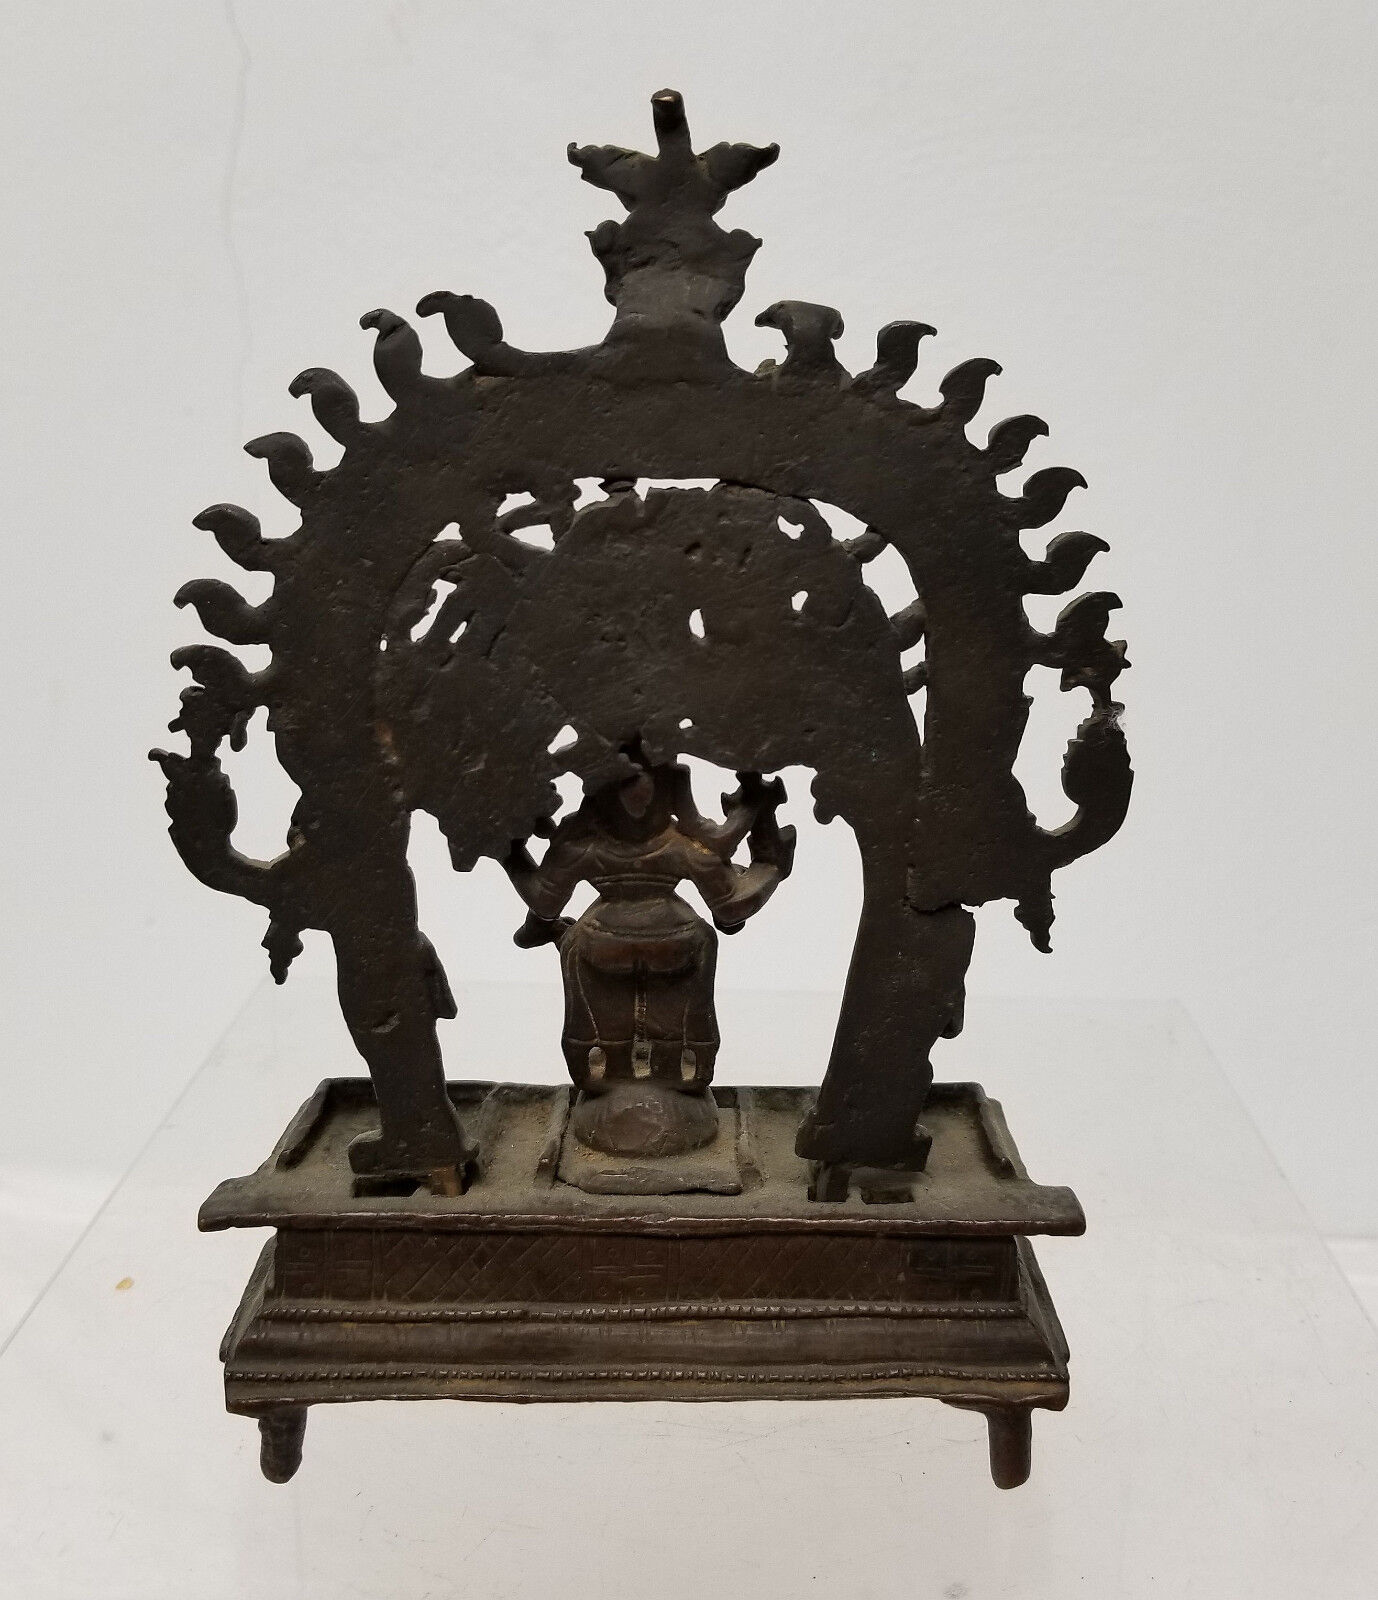 buddhist singles in early county Buddhism is one of the world's major religious traditions, with the majority of its influence in south and southeastern asia developing out of hinduism,.